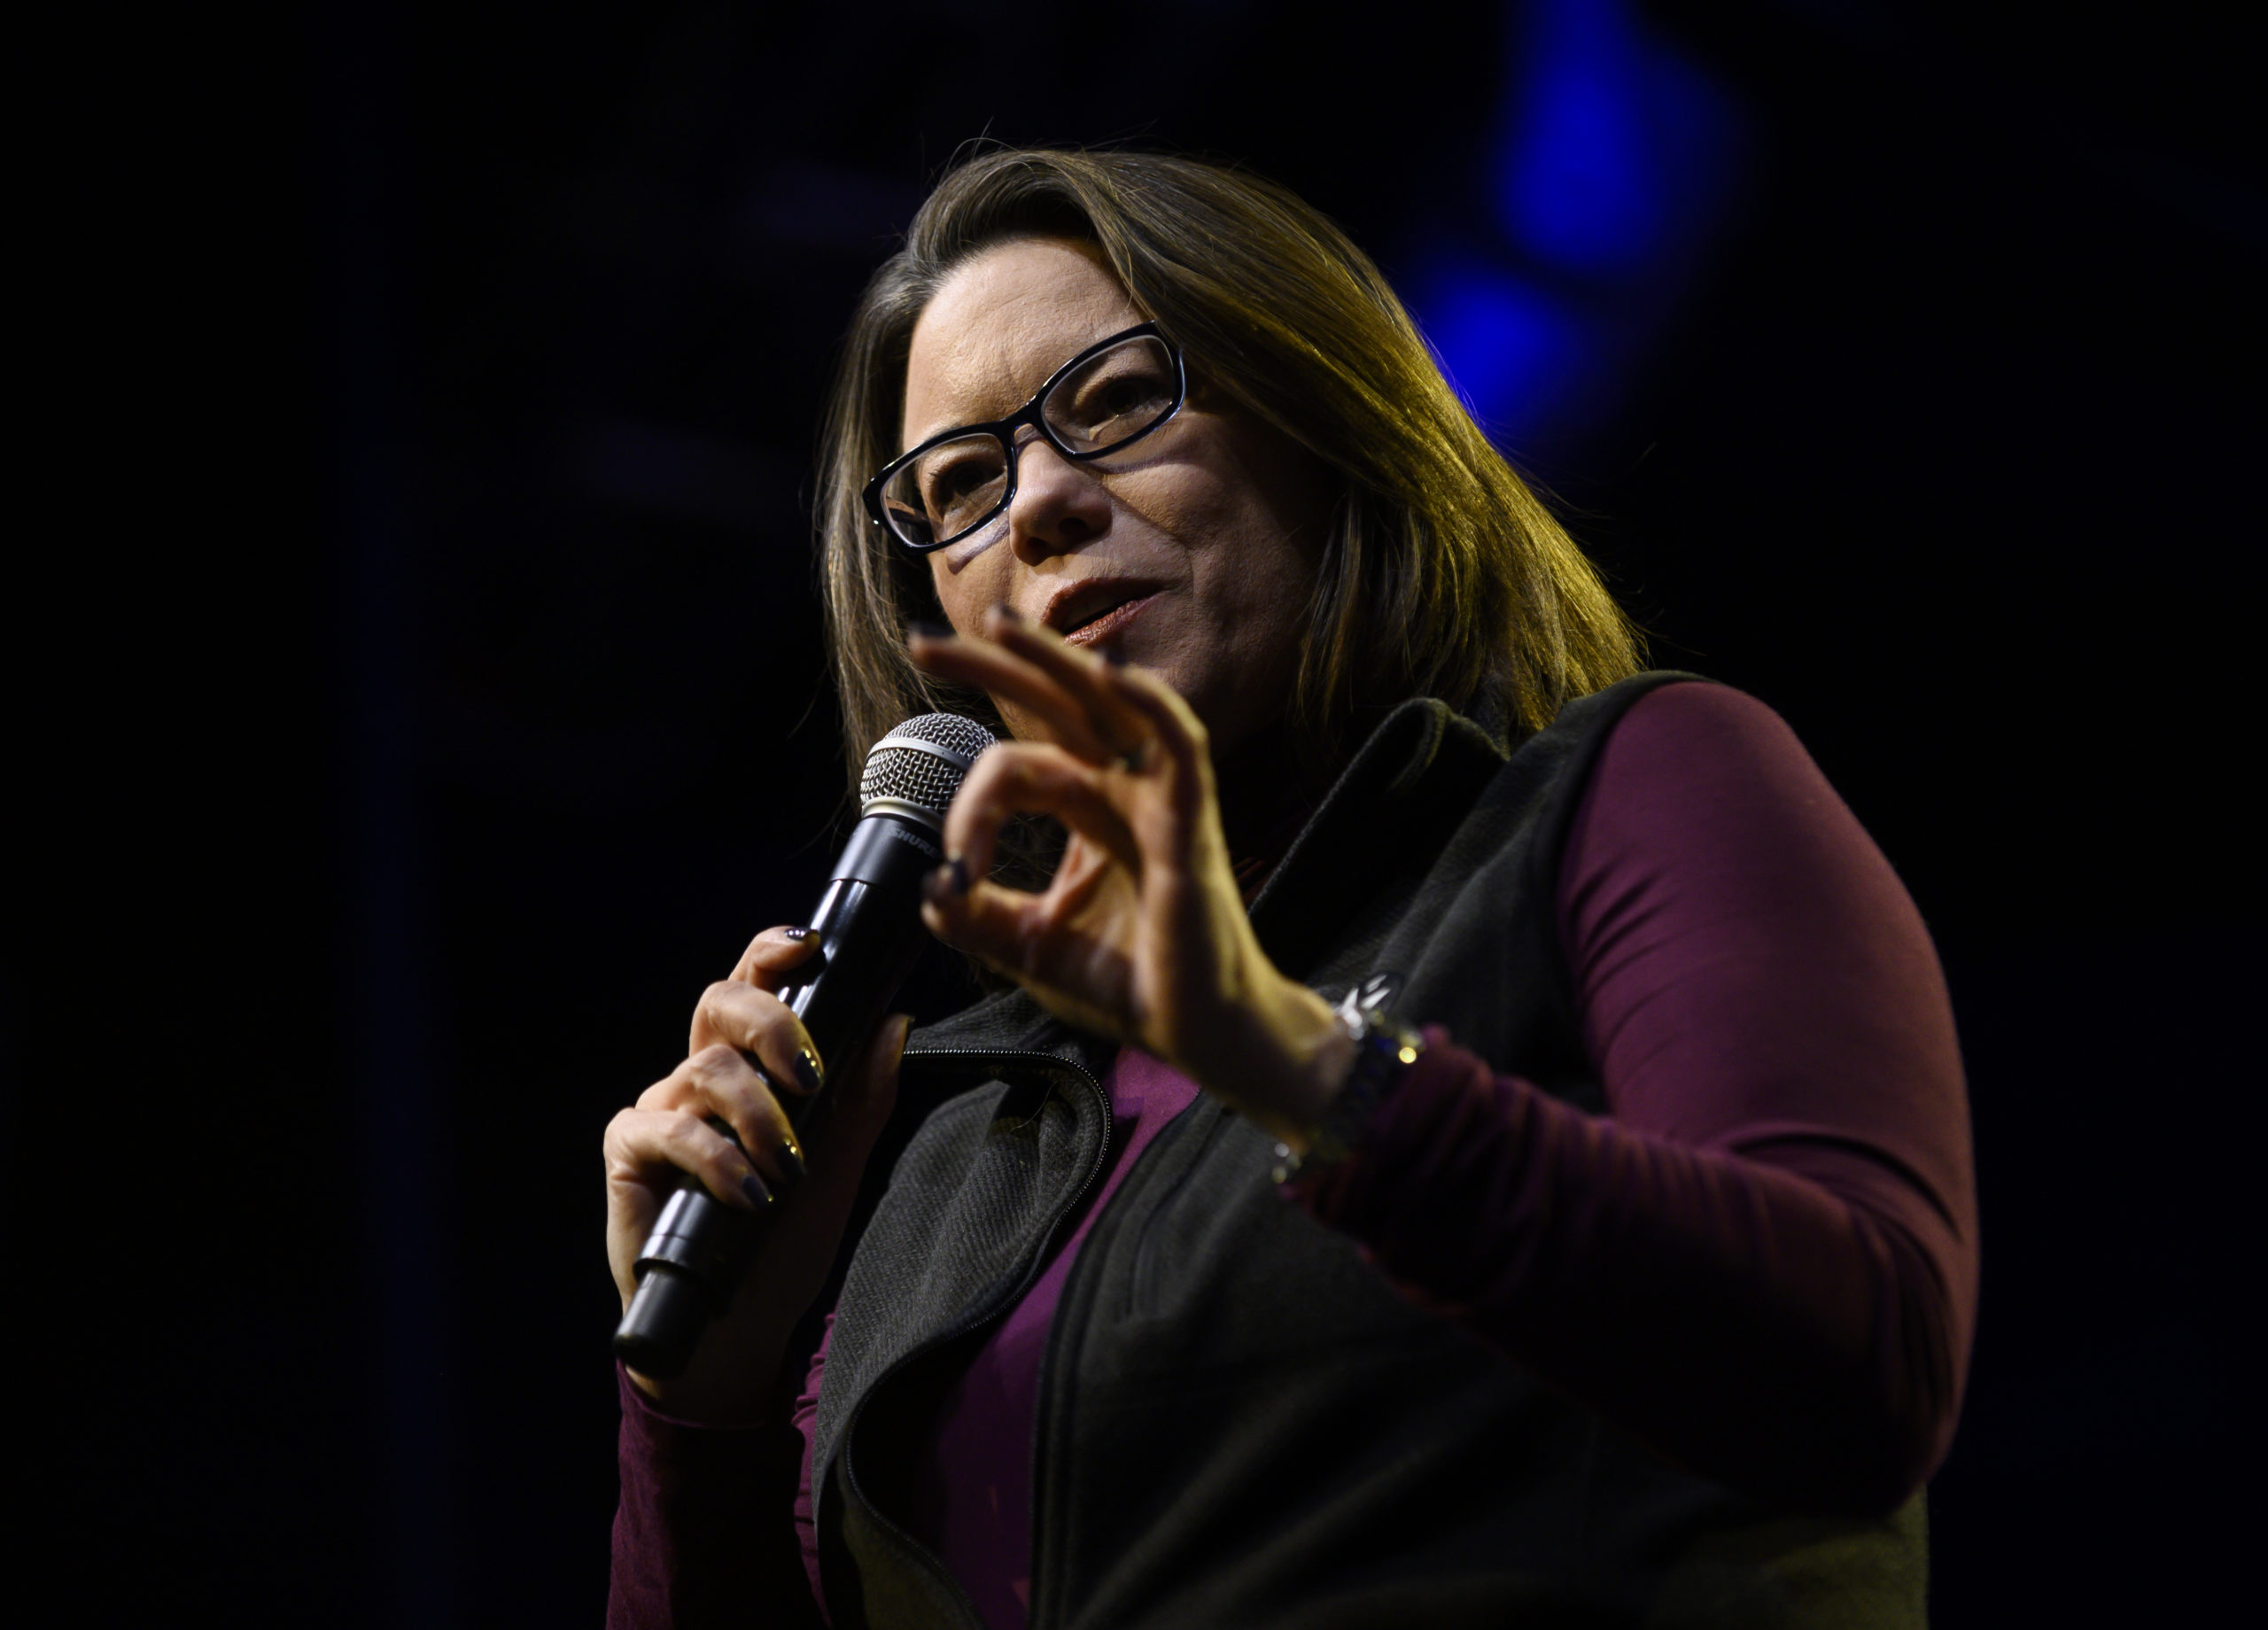 U.S. Rep. Angie Craig (D-MN) speaks in support of Democratic presidential candidate Sen. Amy Klobuchar (D-MN) during a campaign rally at First Avenue on January 17, 2020 in Minneapolis, Minnesota. (Stephen Maturen/Getty Images)